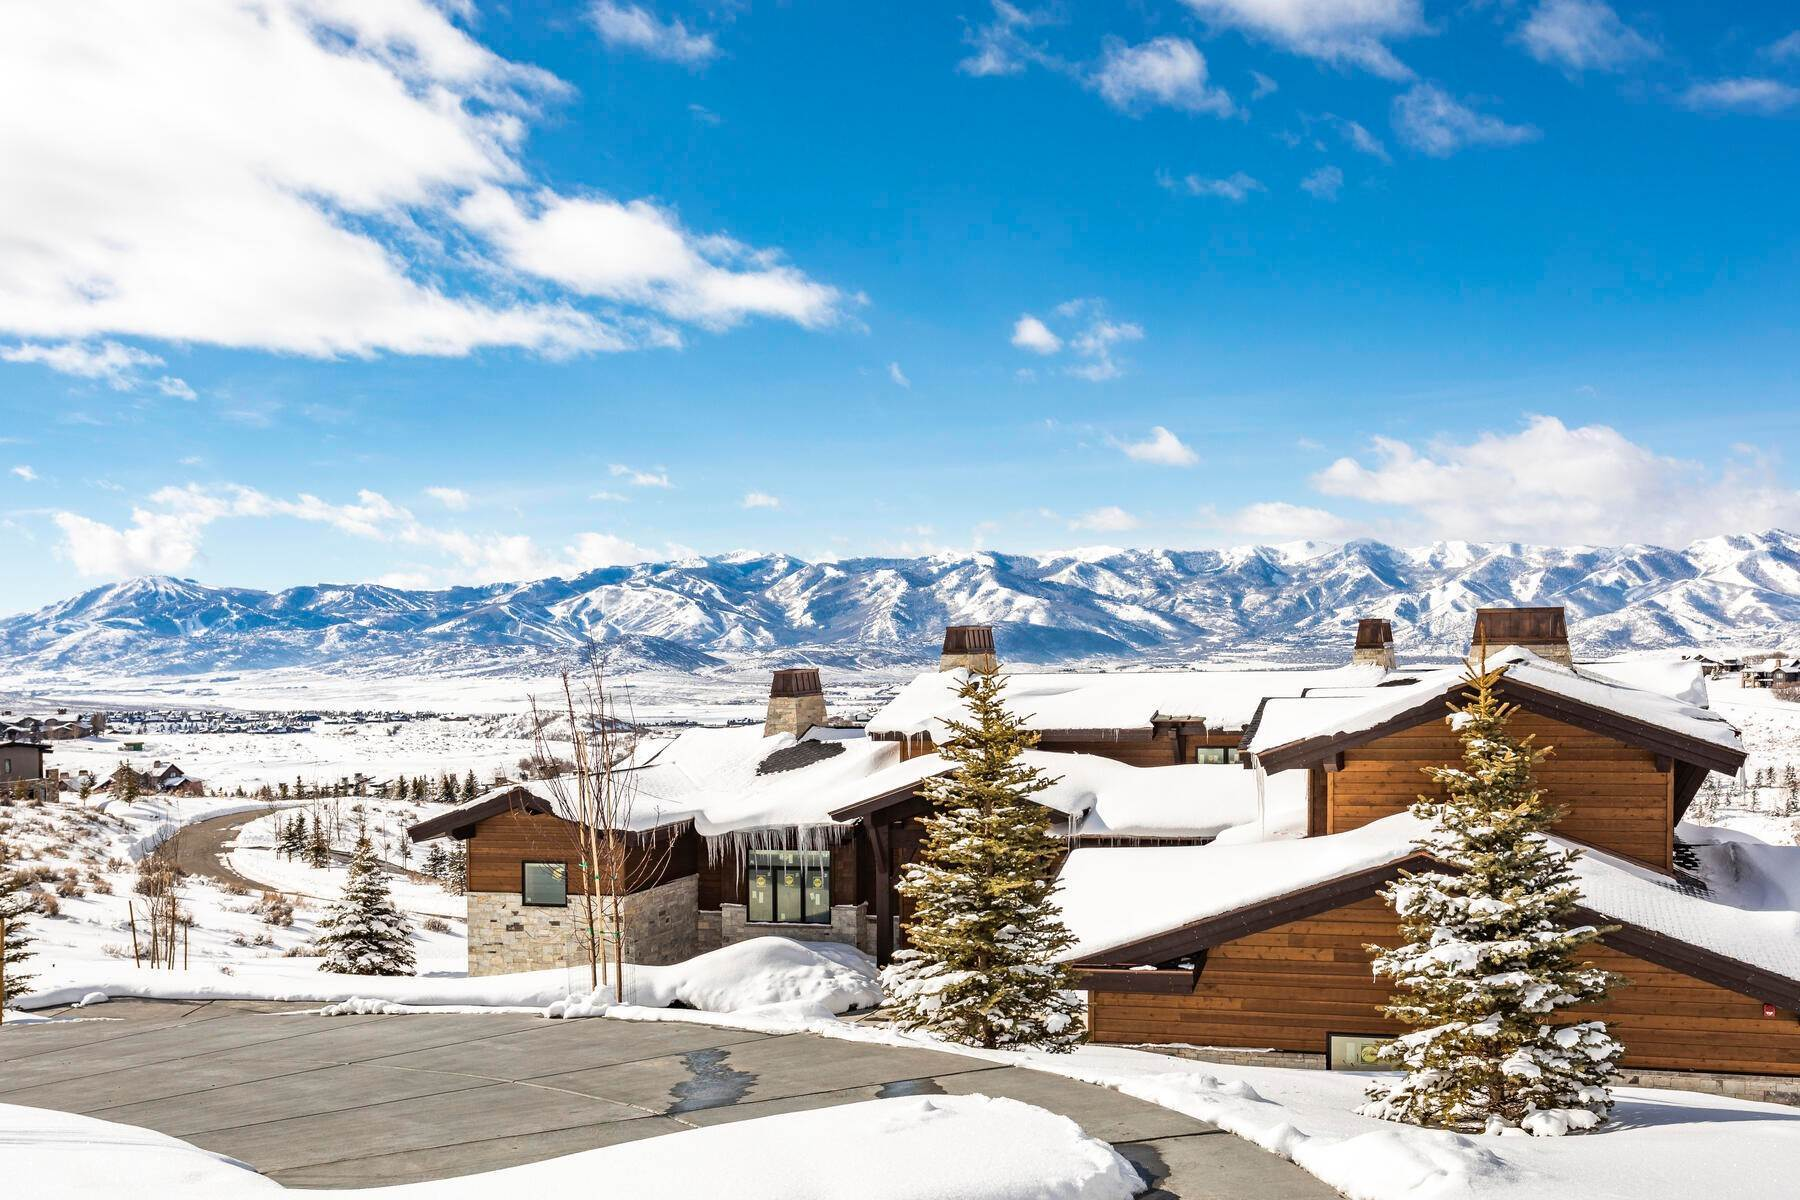 Single Family Homes for Sale at Brand New Home With Huge Ski Resort Views 3388 Central Pacific Trail Park City, Utah 84098 United States